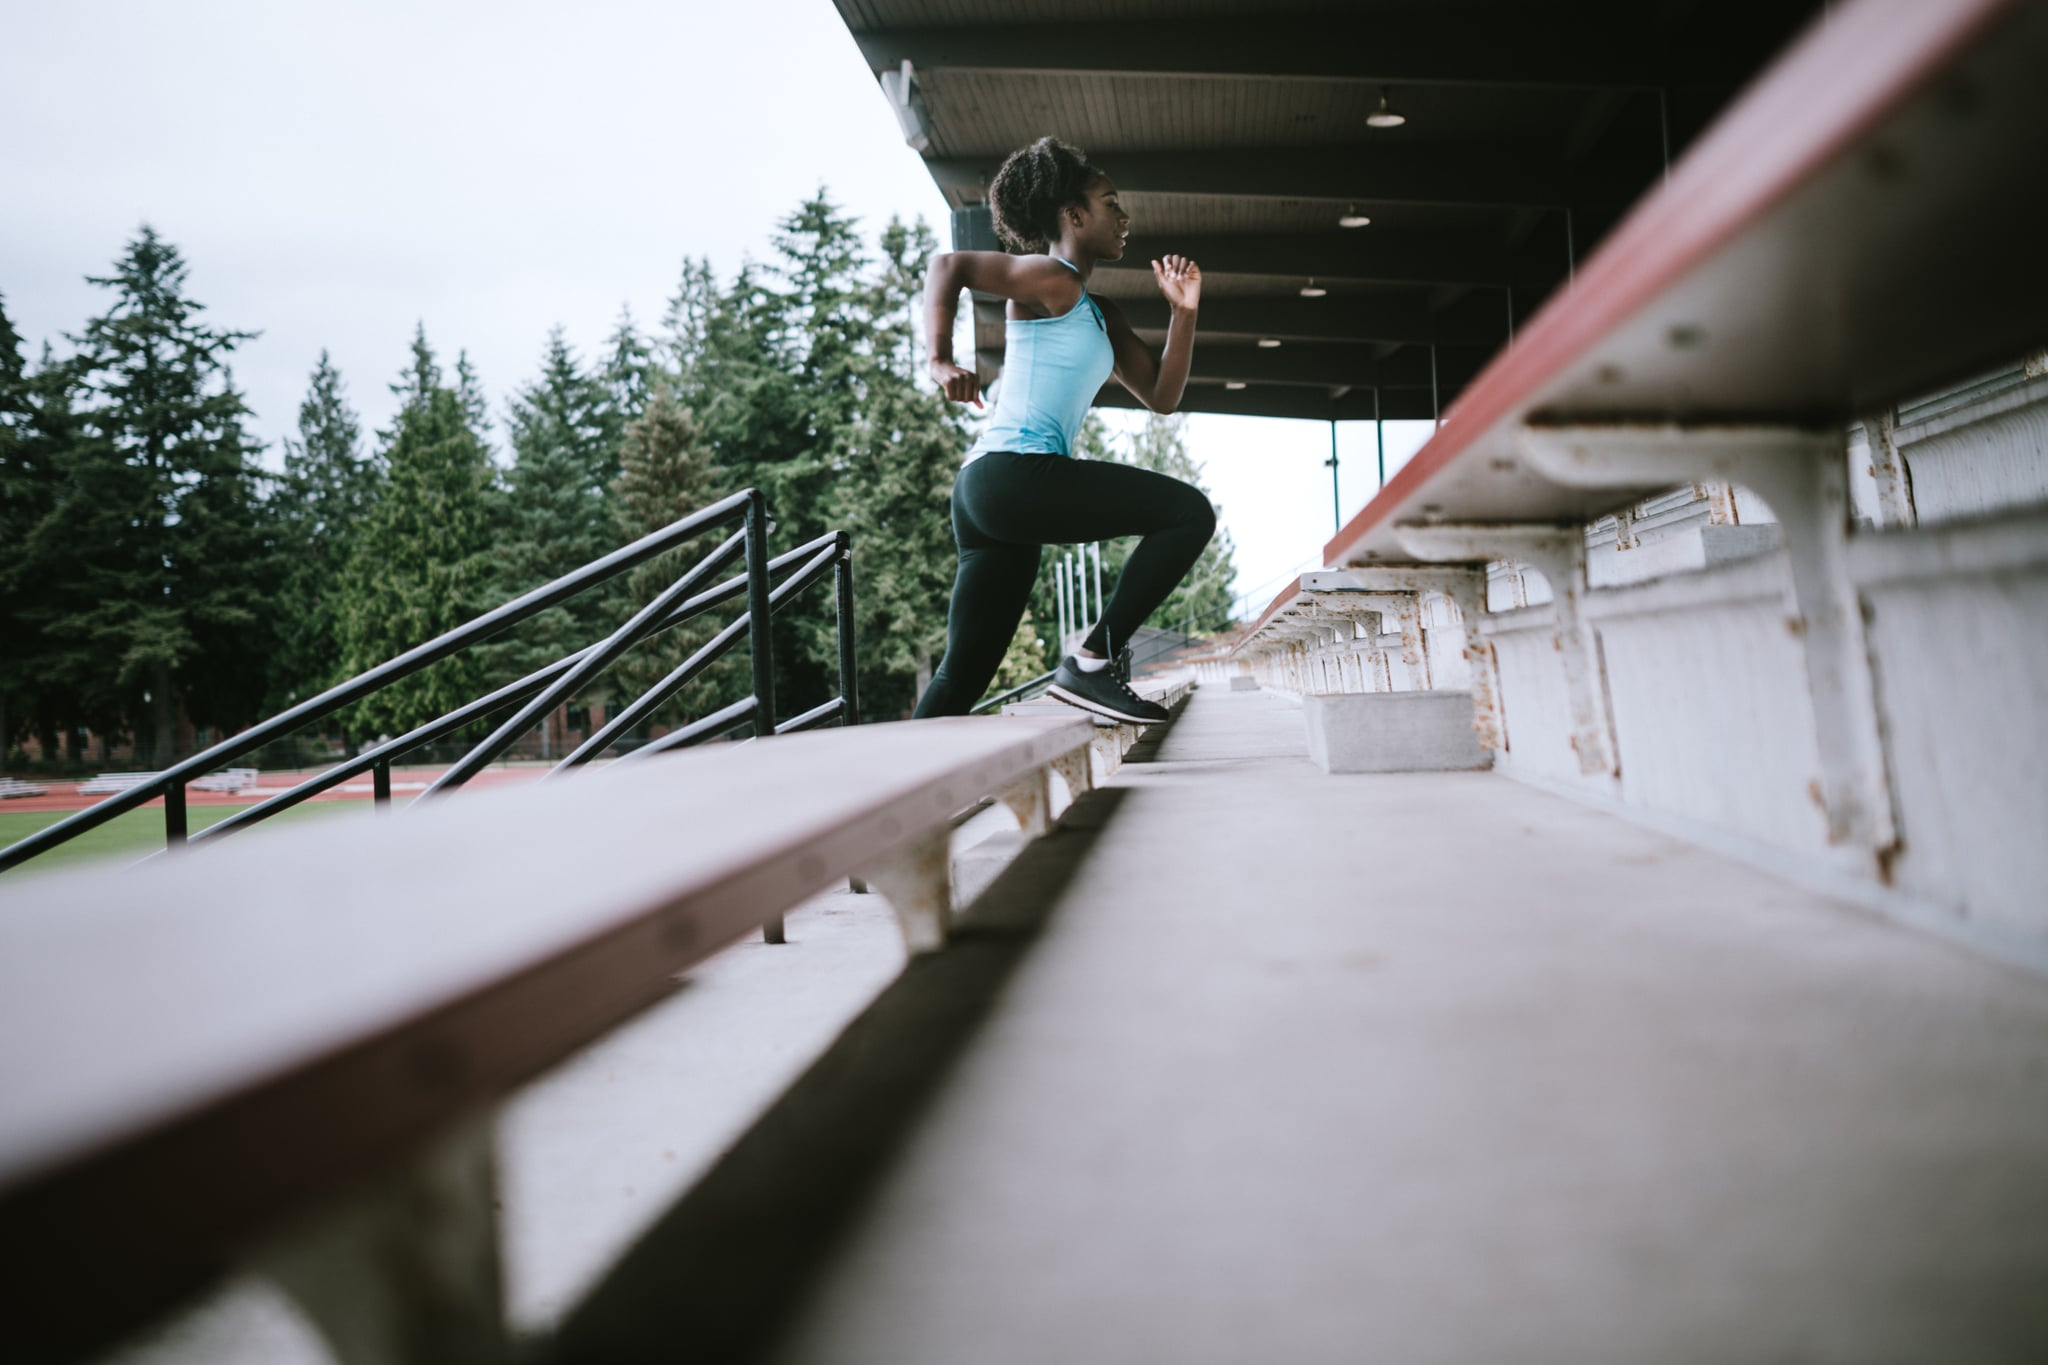 A young woman does sprints up and down the stadium stairs to build speed and strength, training for her next track meet. Horizontal image with copy space.